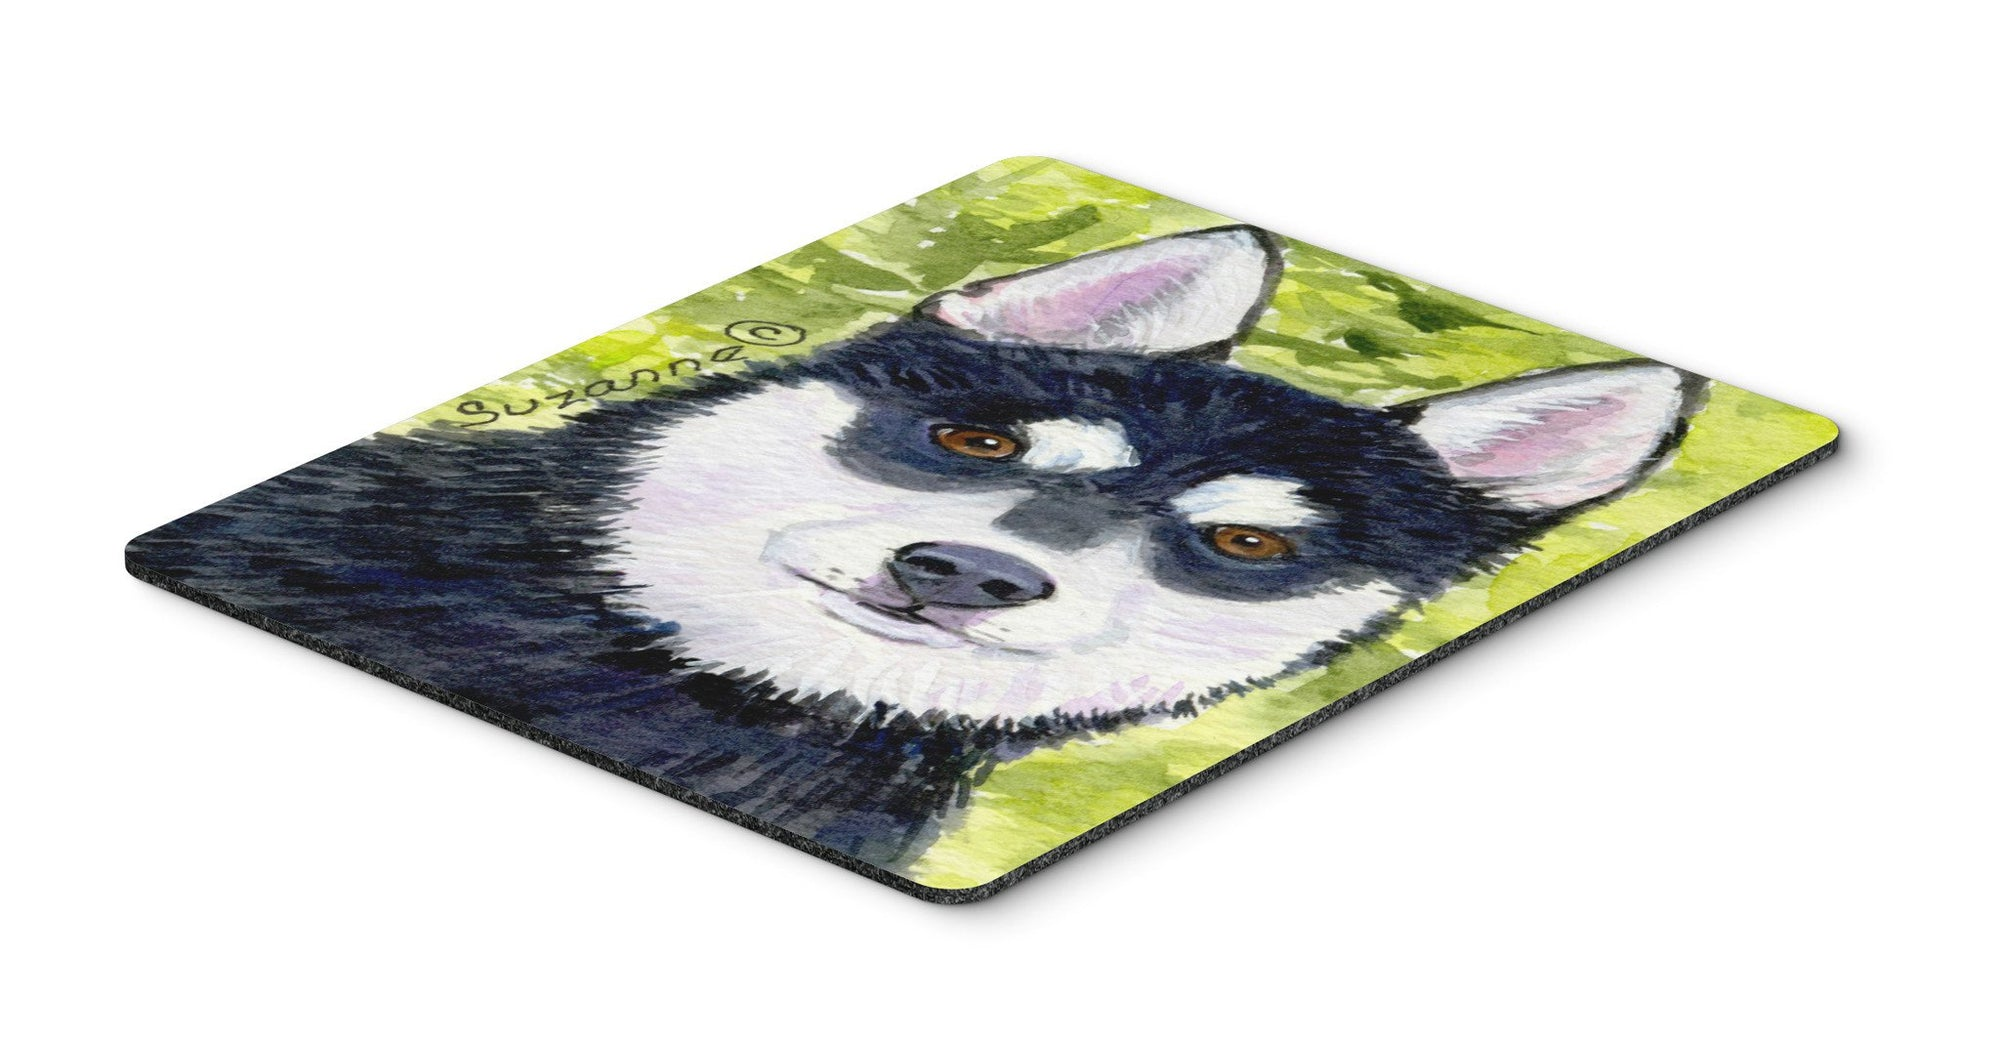 Klee Kai Mouse Pad / Hot Pad / Trivet by Caroline's Treasures